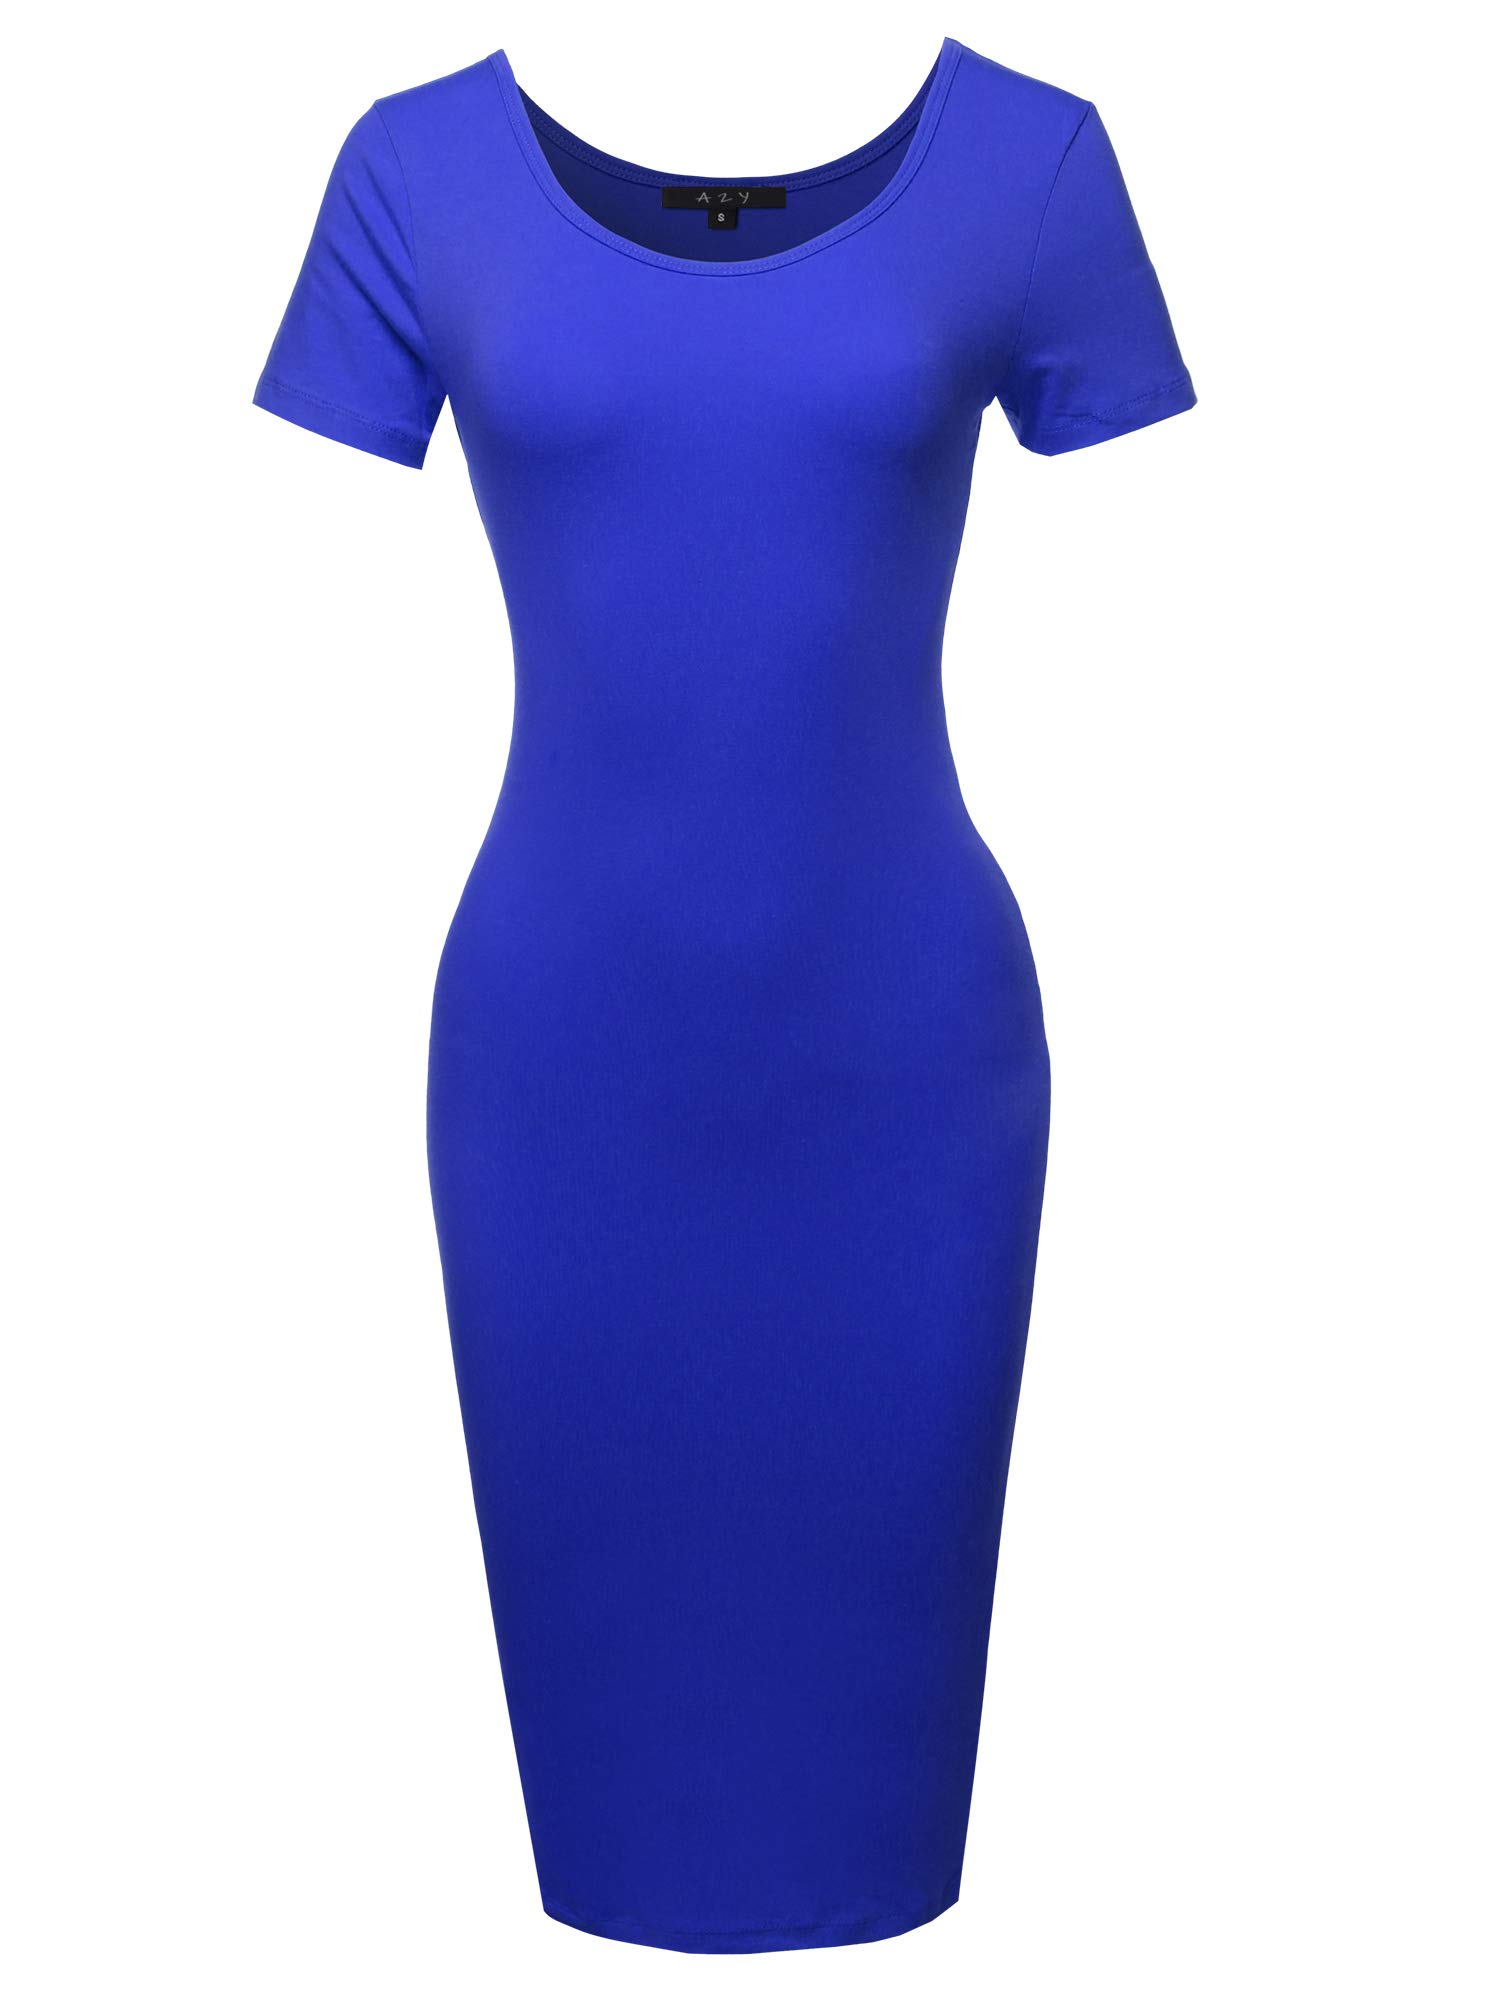 Available at Amazon: Women's Solid Fitted Classic Short Sleeve Premium Cotton Midi Dress